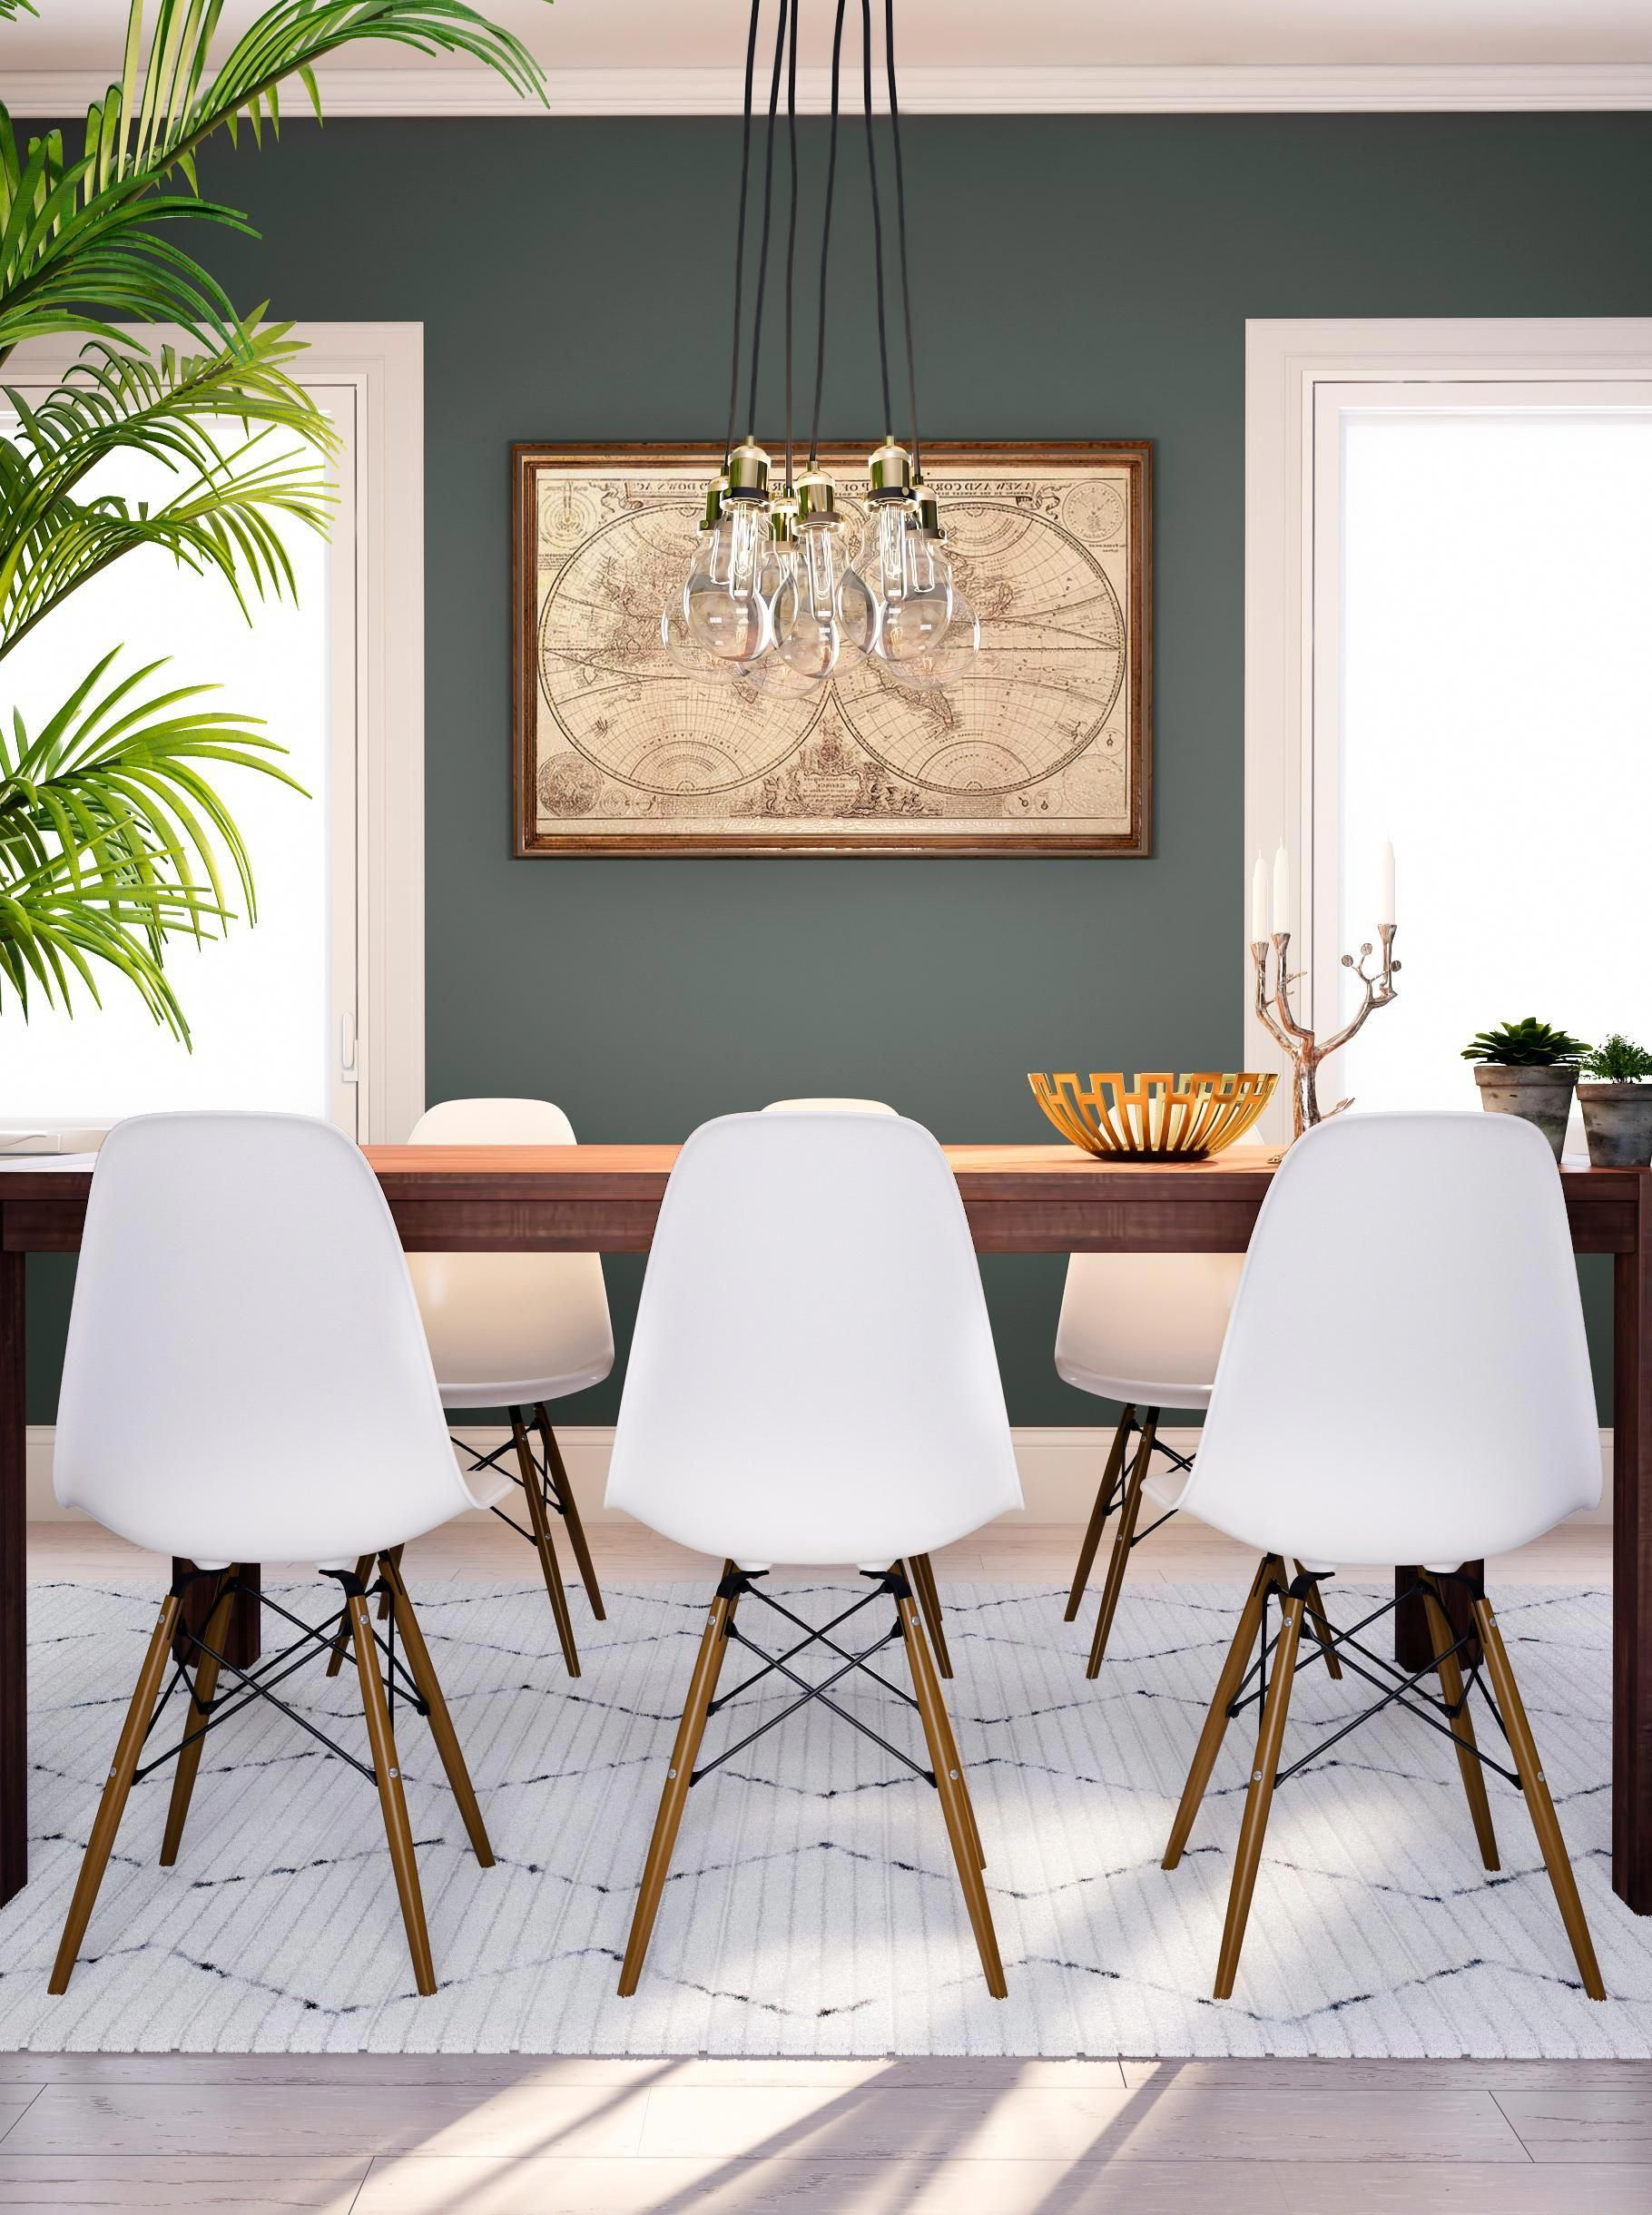 Have this dining room ready for your next dinner party. A